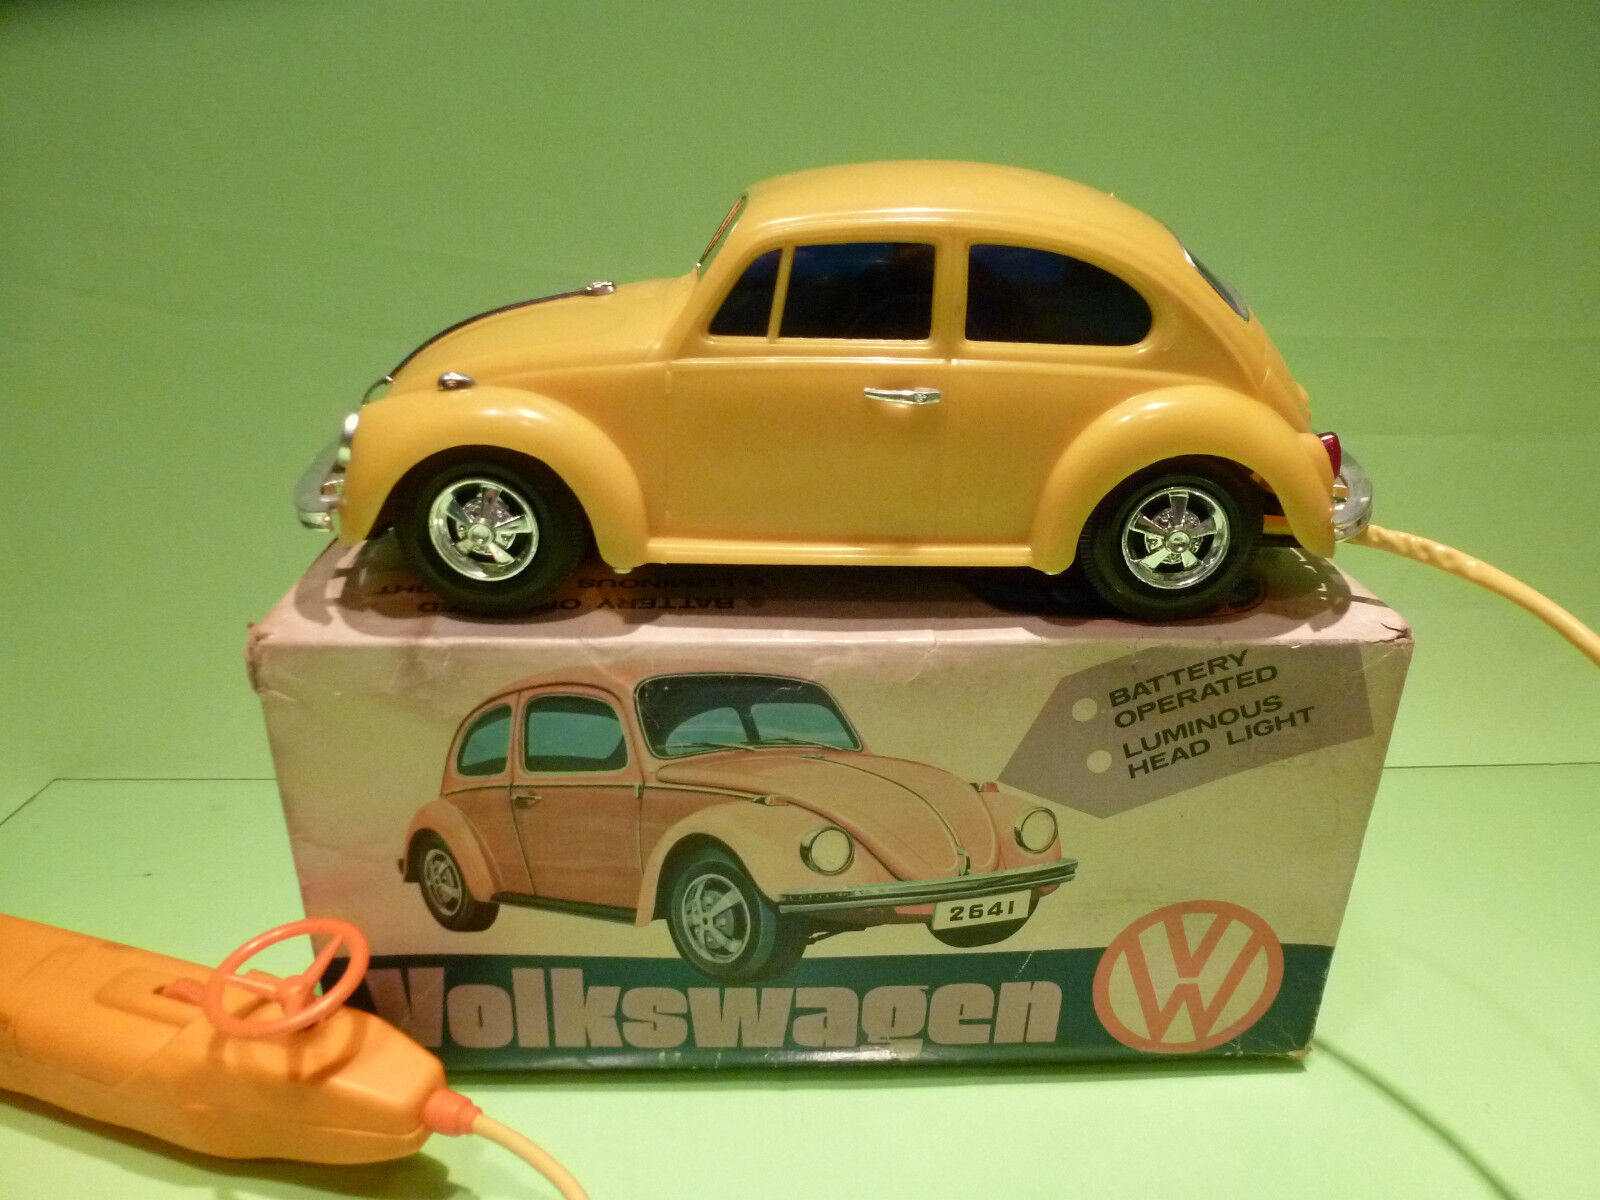 MADE IN HONG KONG 2641 VW VOLKSWAGEN - RC - RARE SELTEN - GOOD COND.IN BOX